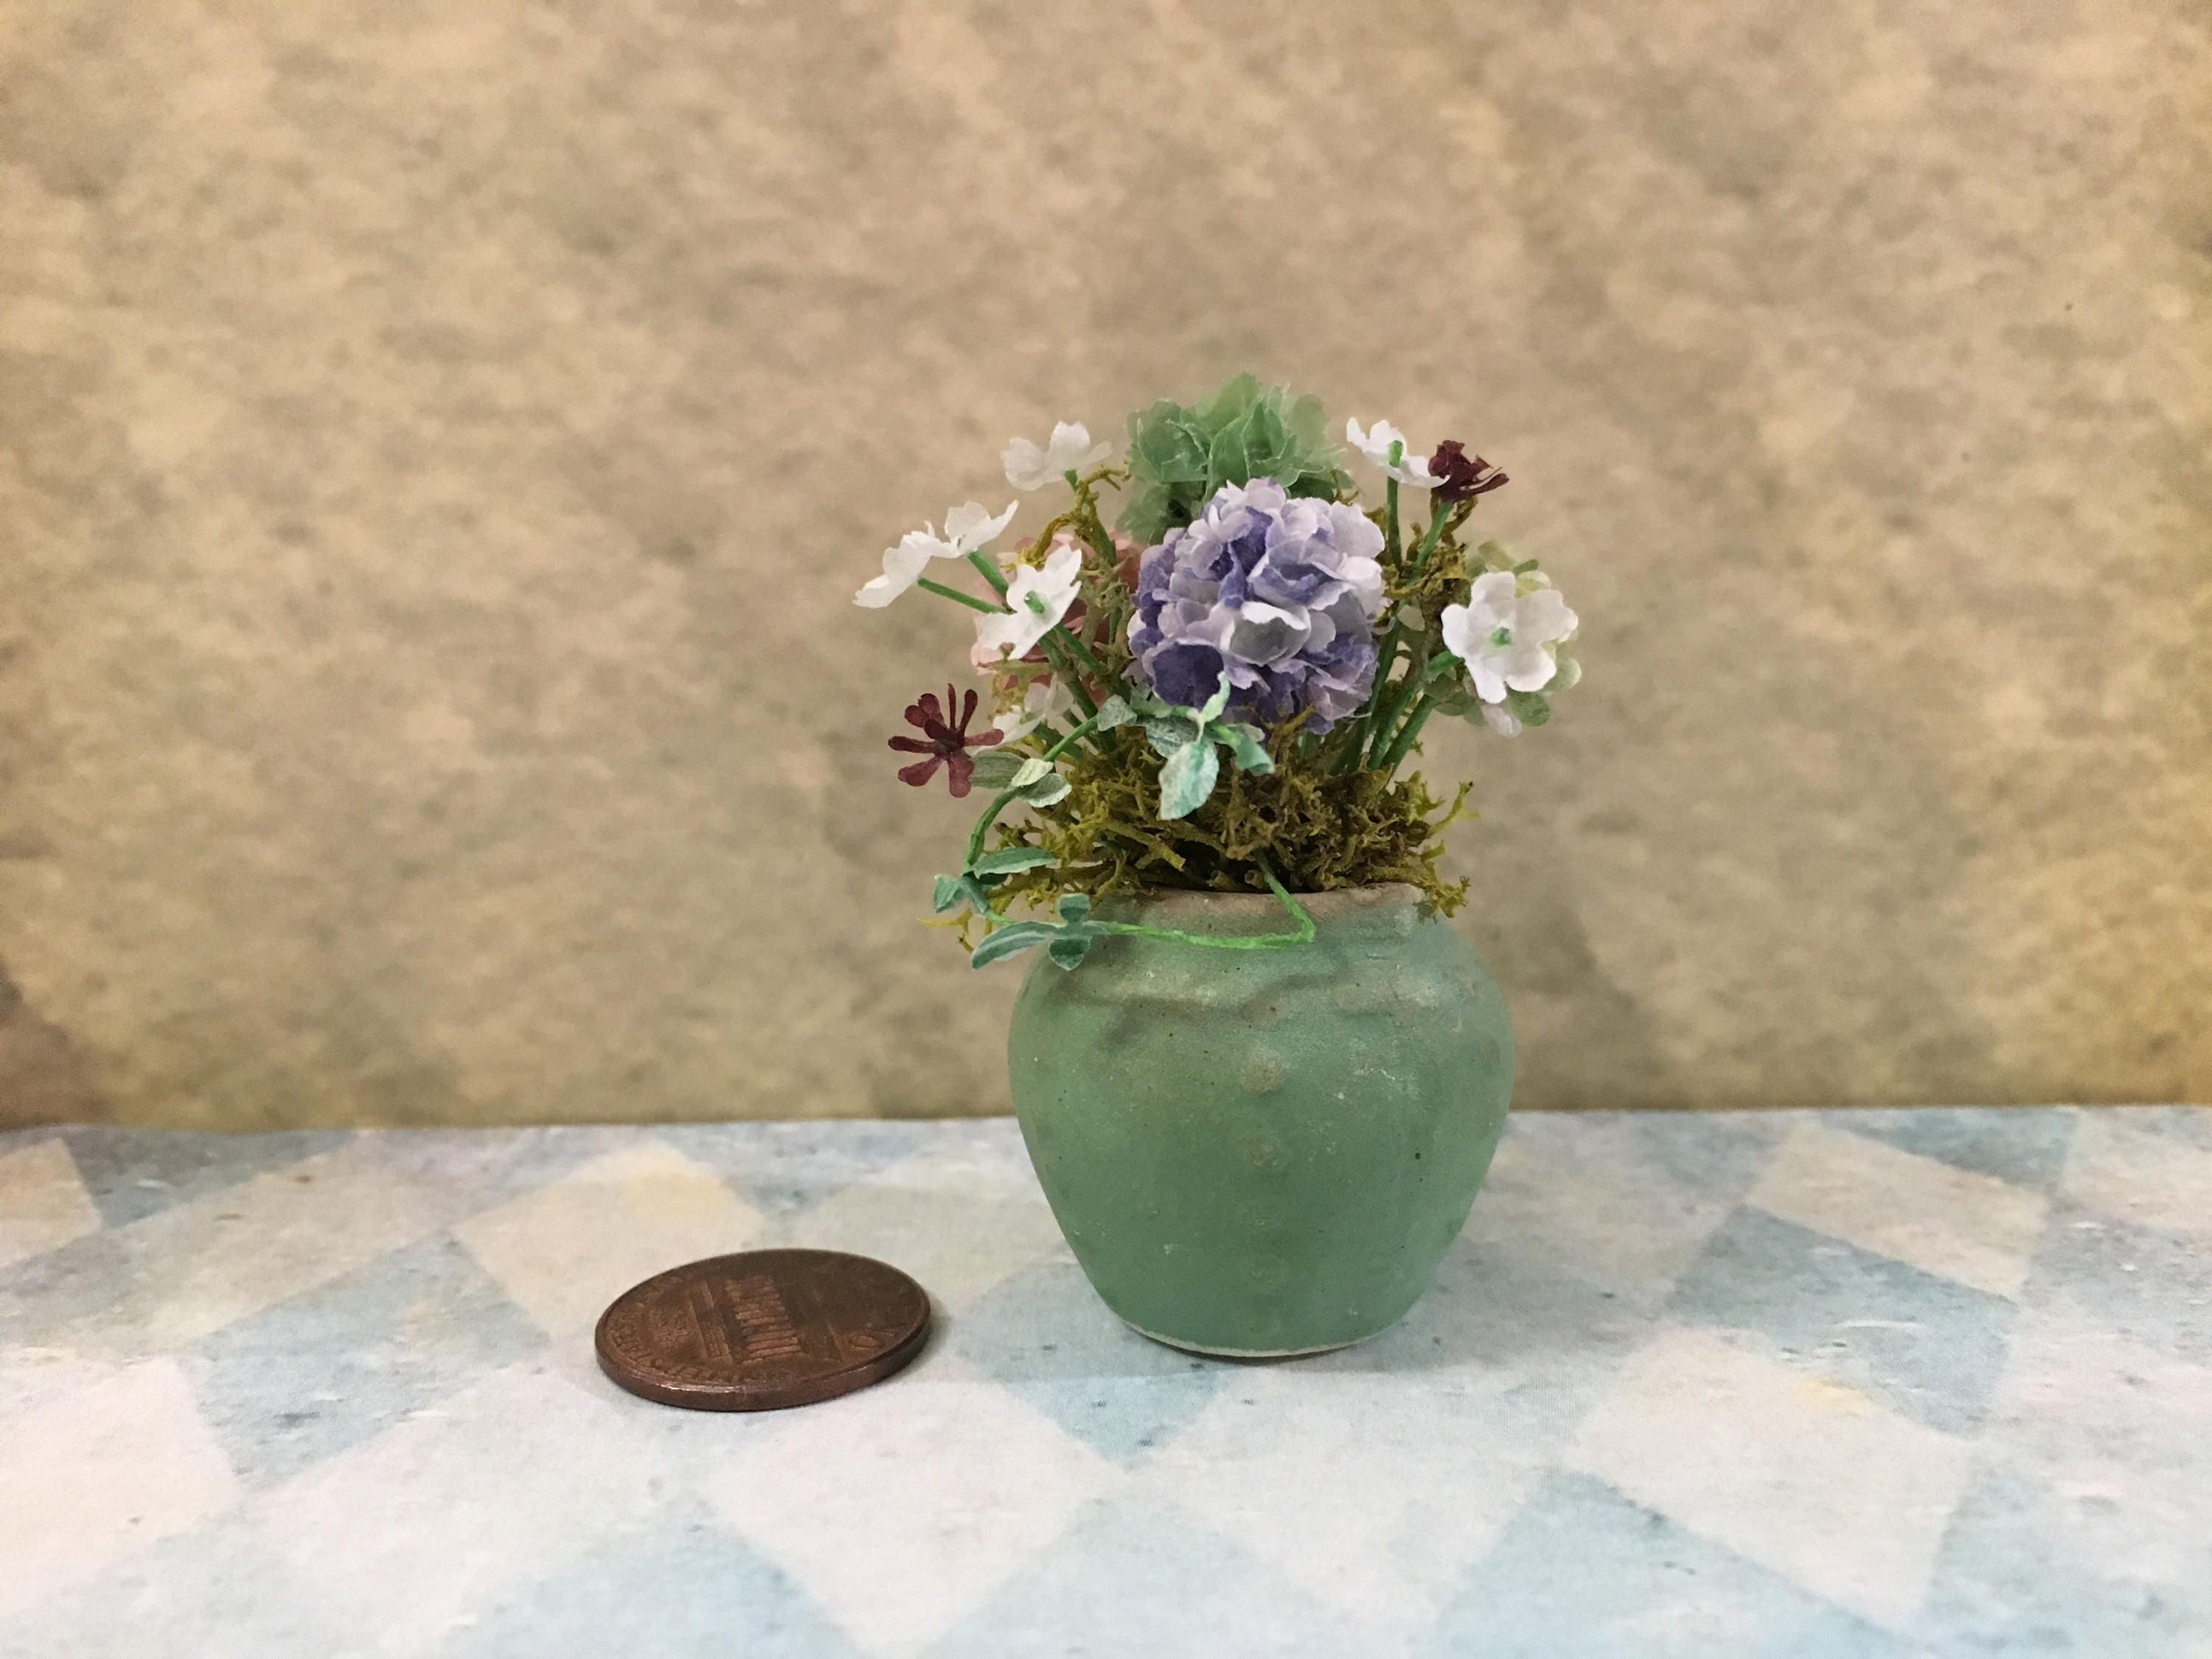 Dollhouse Flower Box Miniature Garden BJD 1:12 Dollhouse Miniature Log Planter